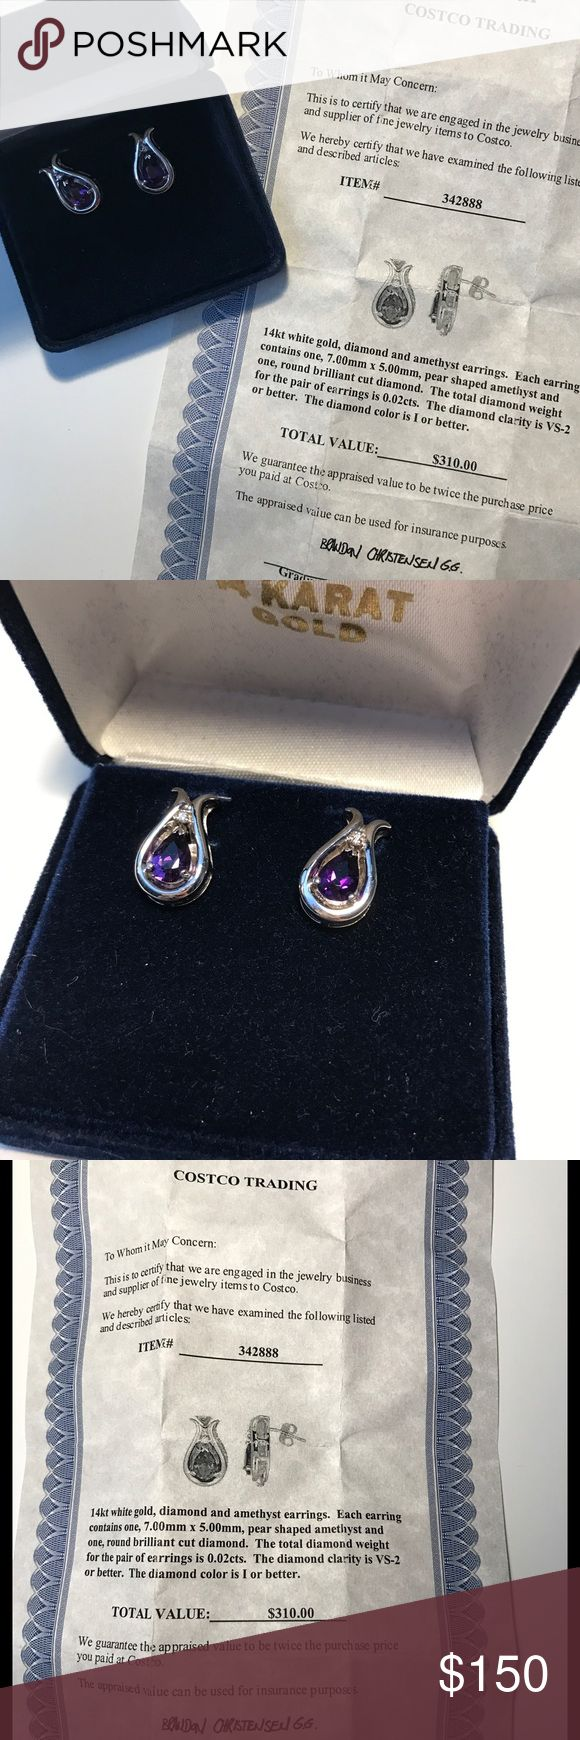 14kt White Gold, Amethyst & Diamond Earrings NEVER WORN! Purchased at Costco complete with appraisal that guarantees value to DOUBLE! Beautiful! Jewelry Earrings